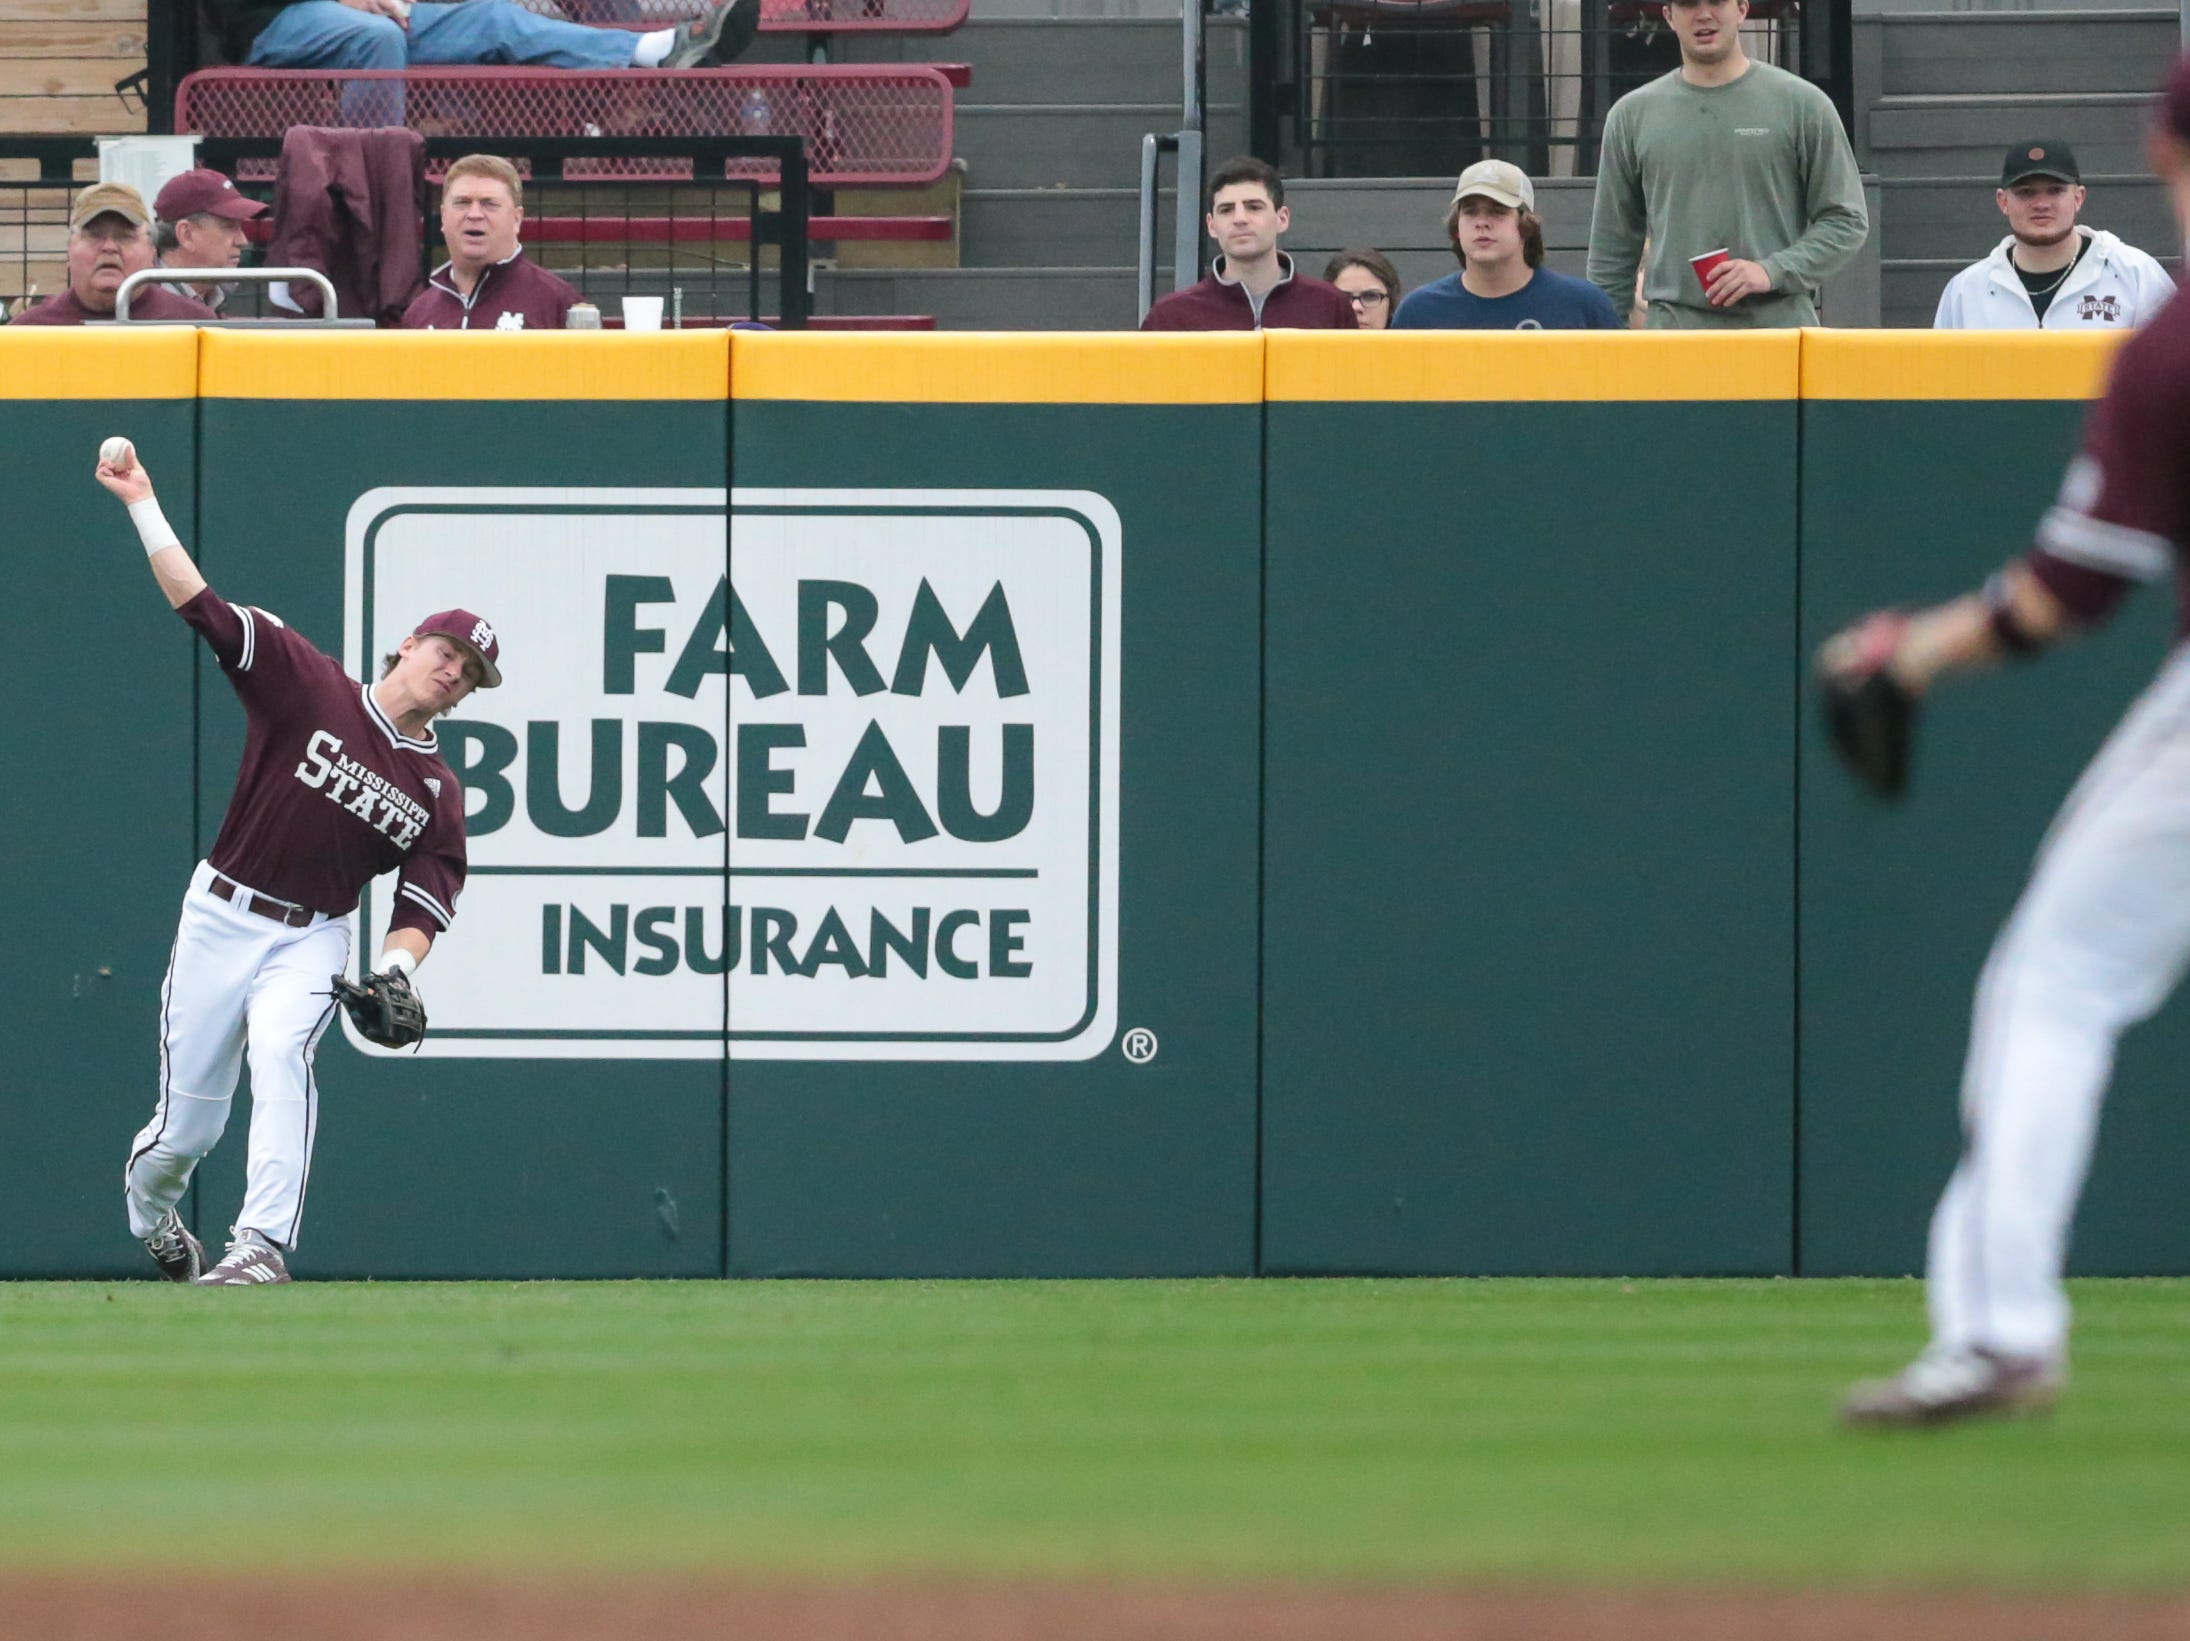 Mississippi State's Rowdey Jordan (4) makes a throw to Mississippi State's Jordan Westburg (11). Mississippi State opened the 2019 baseball season against Youngstown State on Friday, February 15, 2019. Photo by Keith Warren